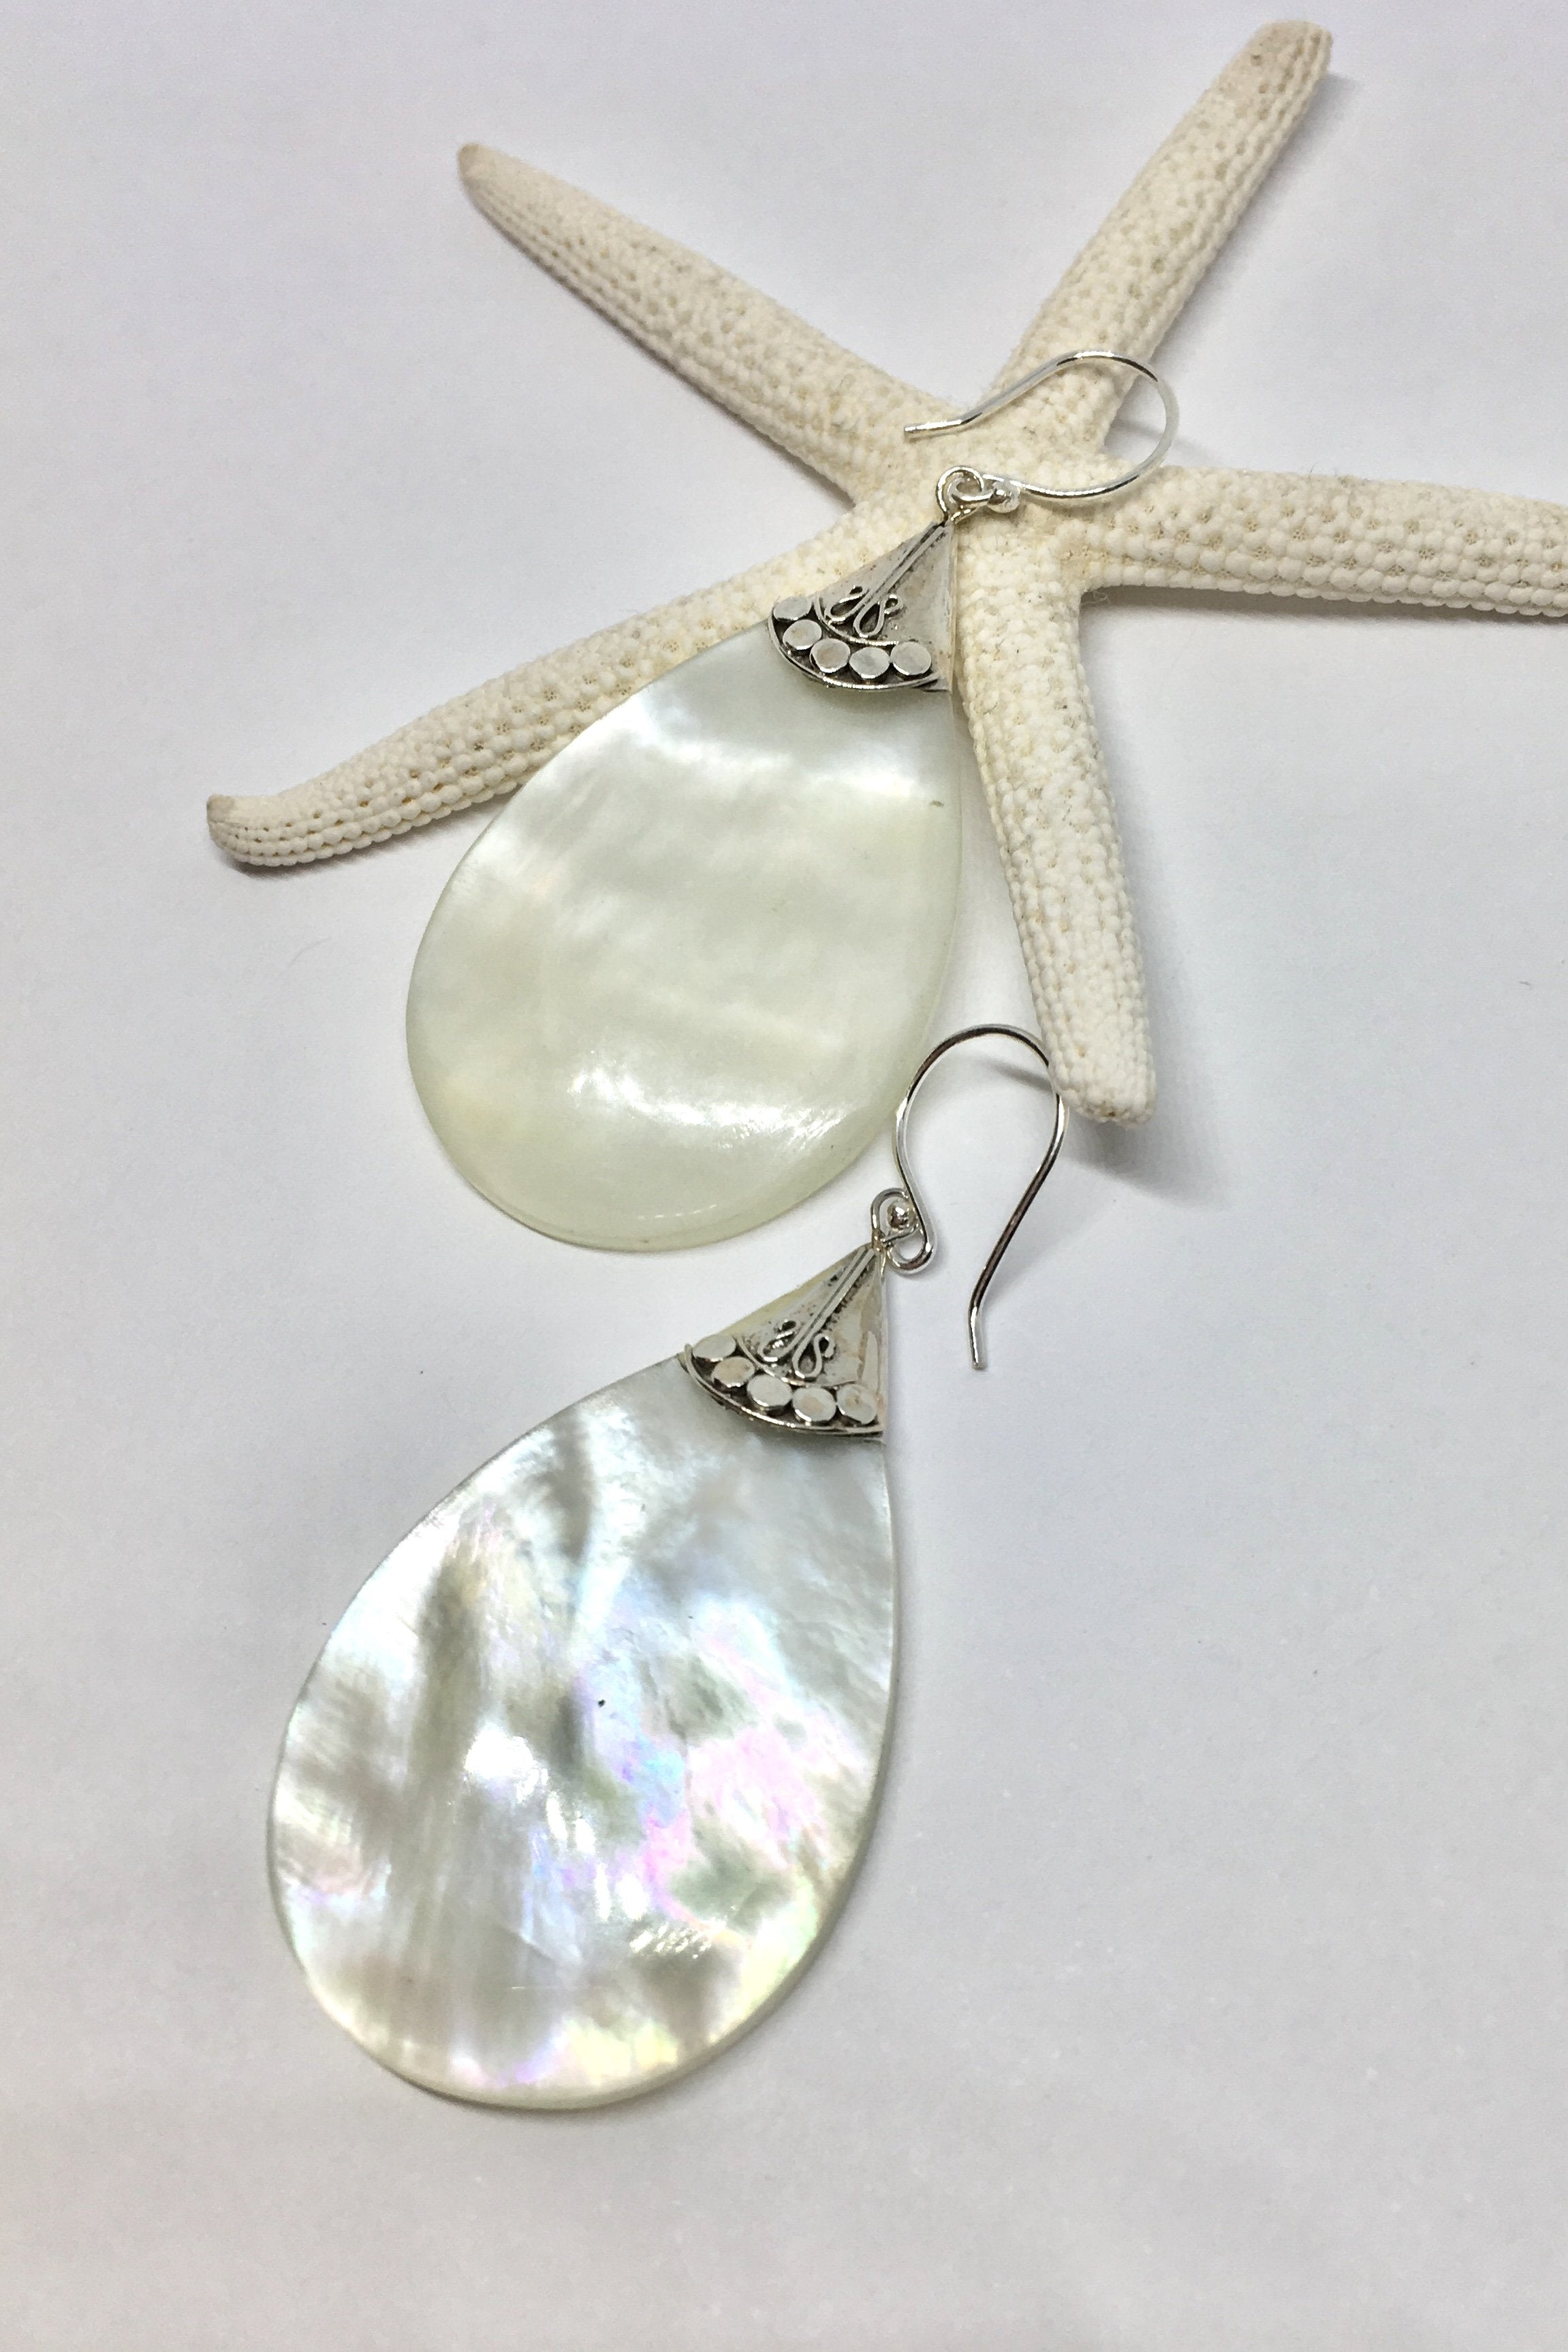 Mother of Pearl teardrop style earrings with 925 solid silver detailing